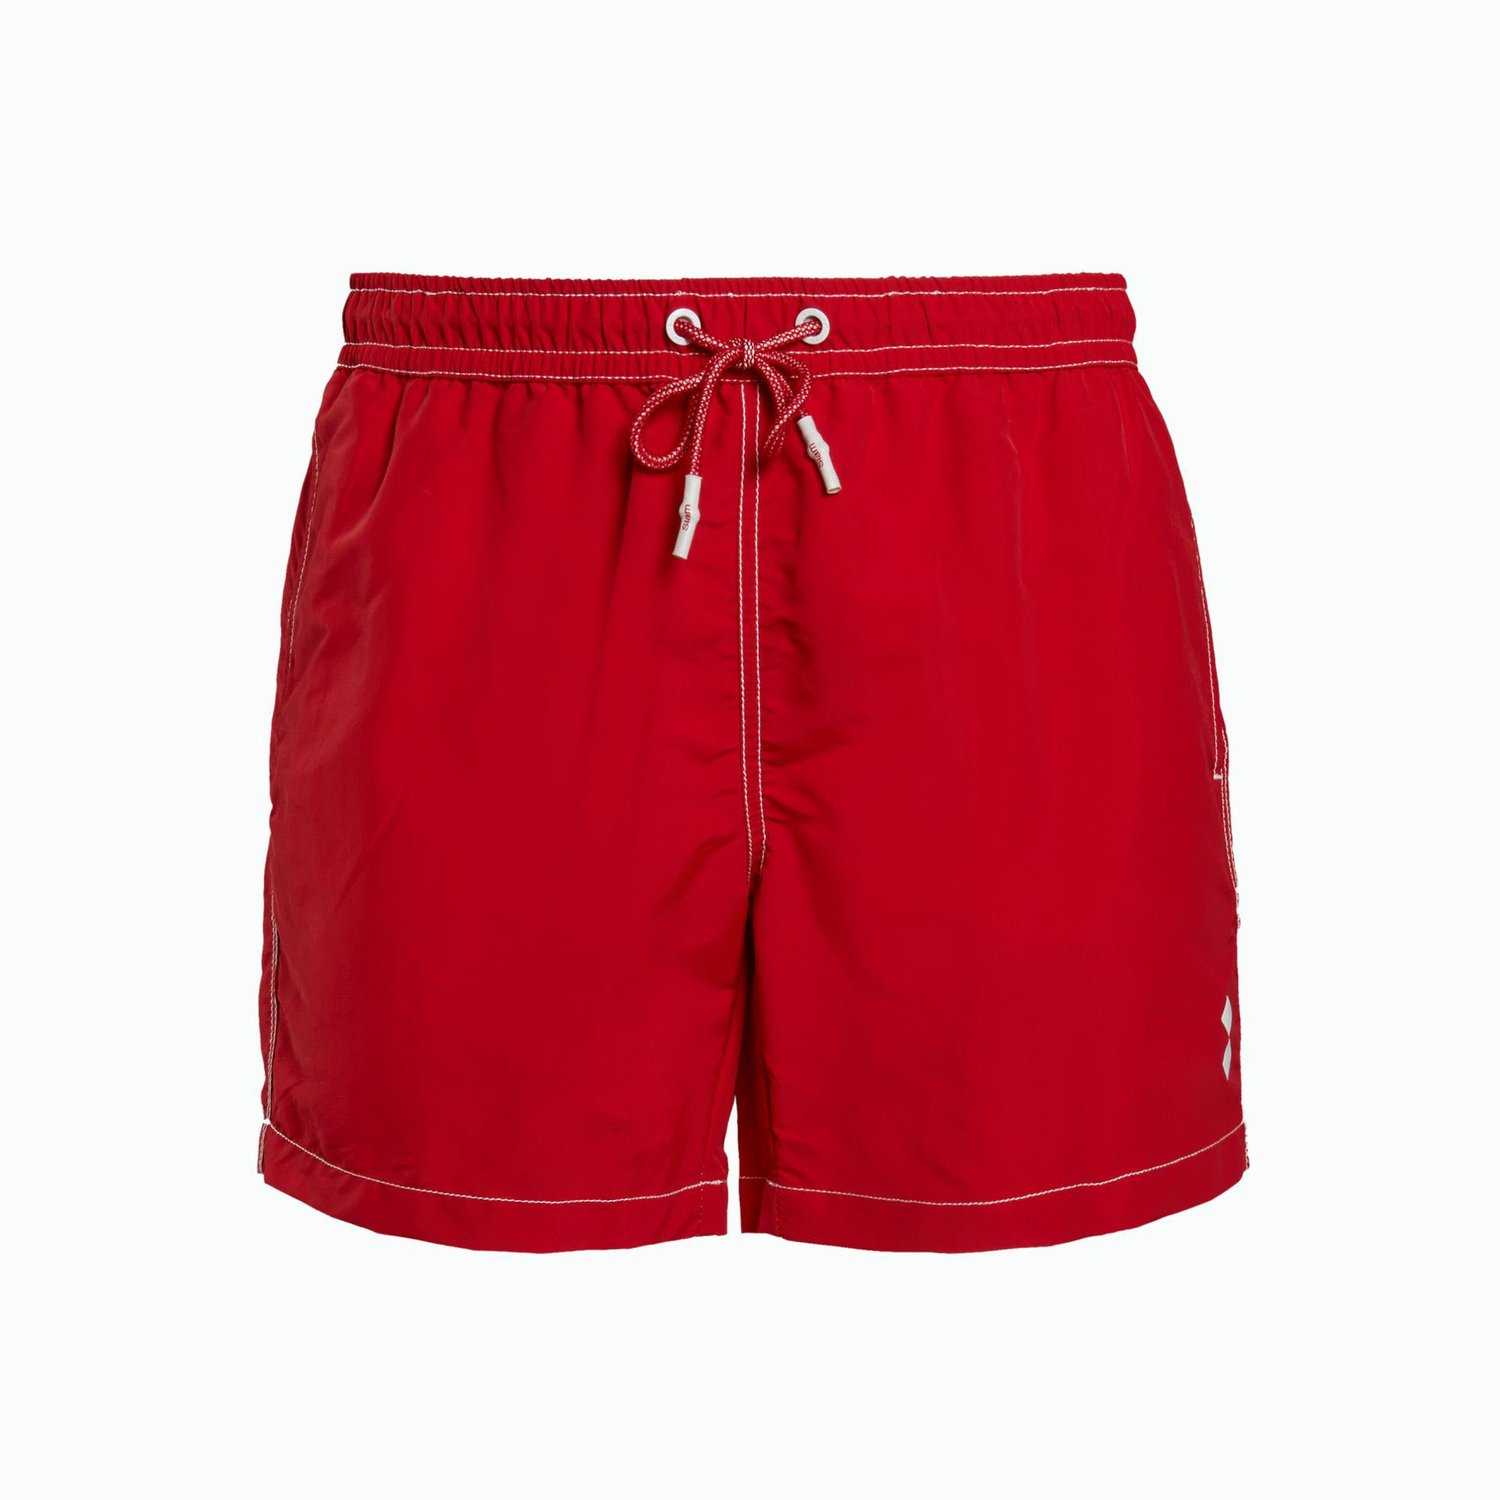 Swimsuit A62 - Slam Red